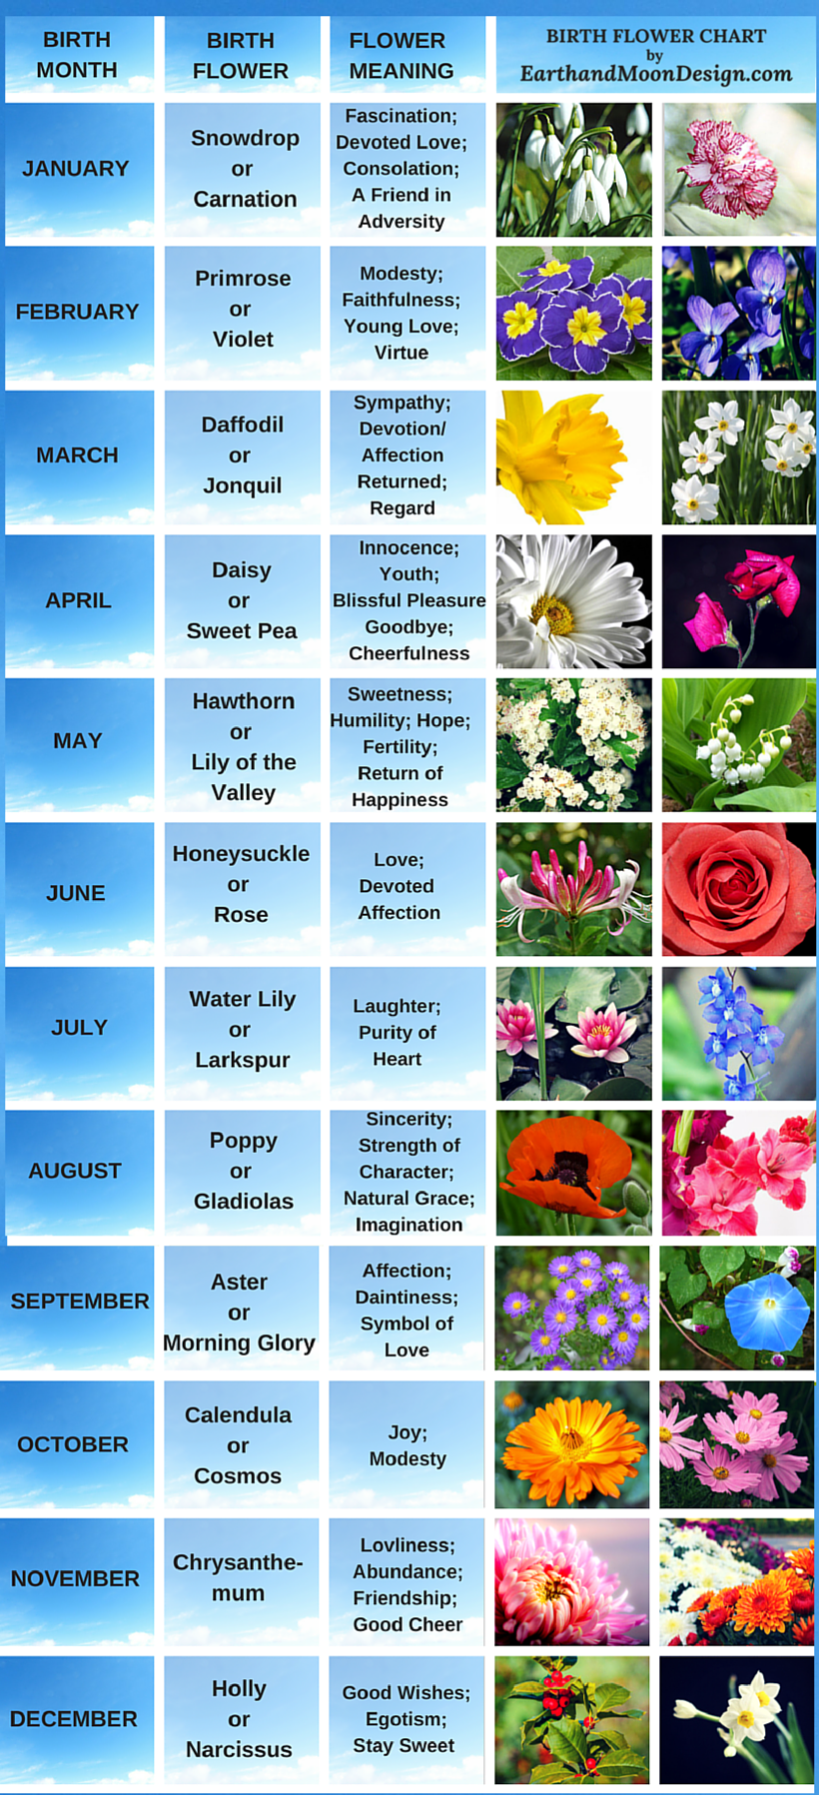 BIRTH FLOWER CHART by Birth